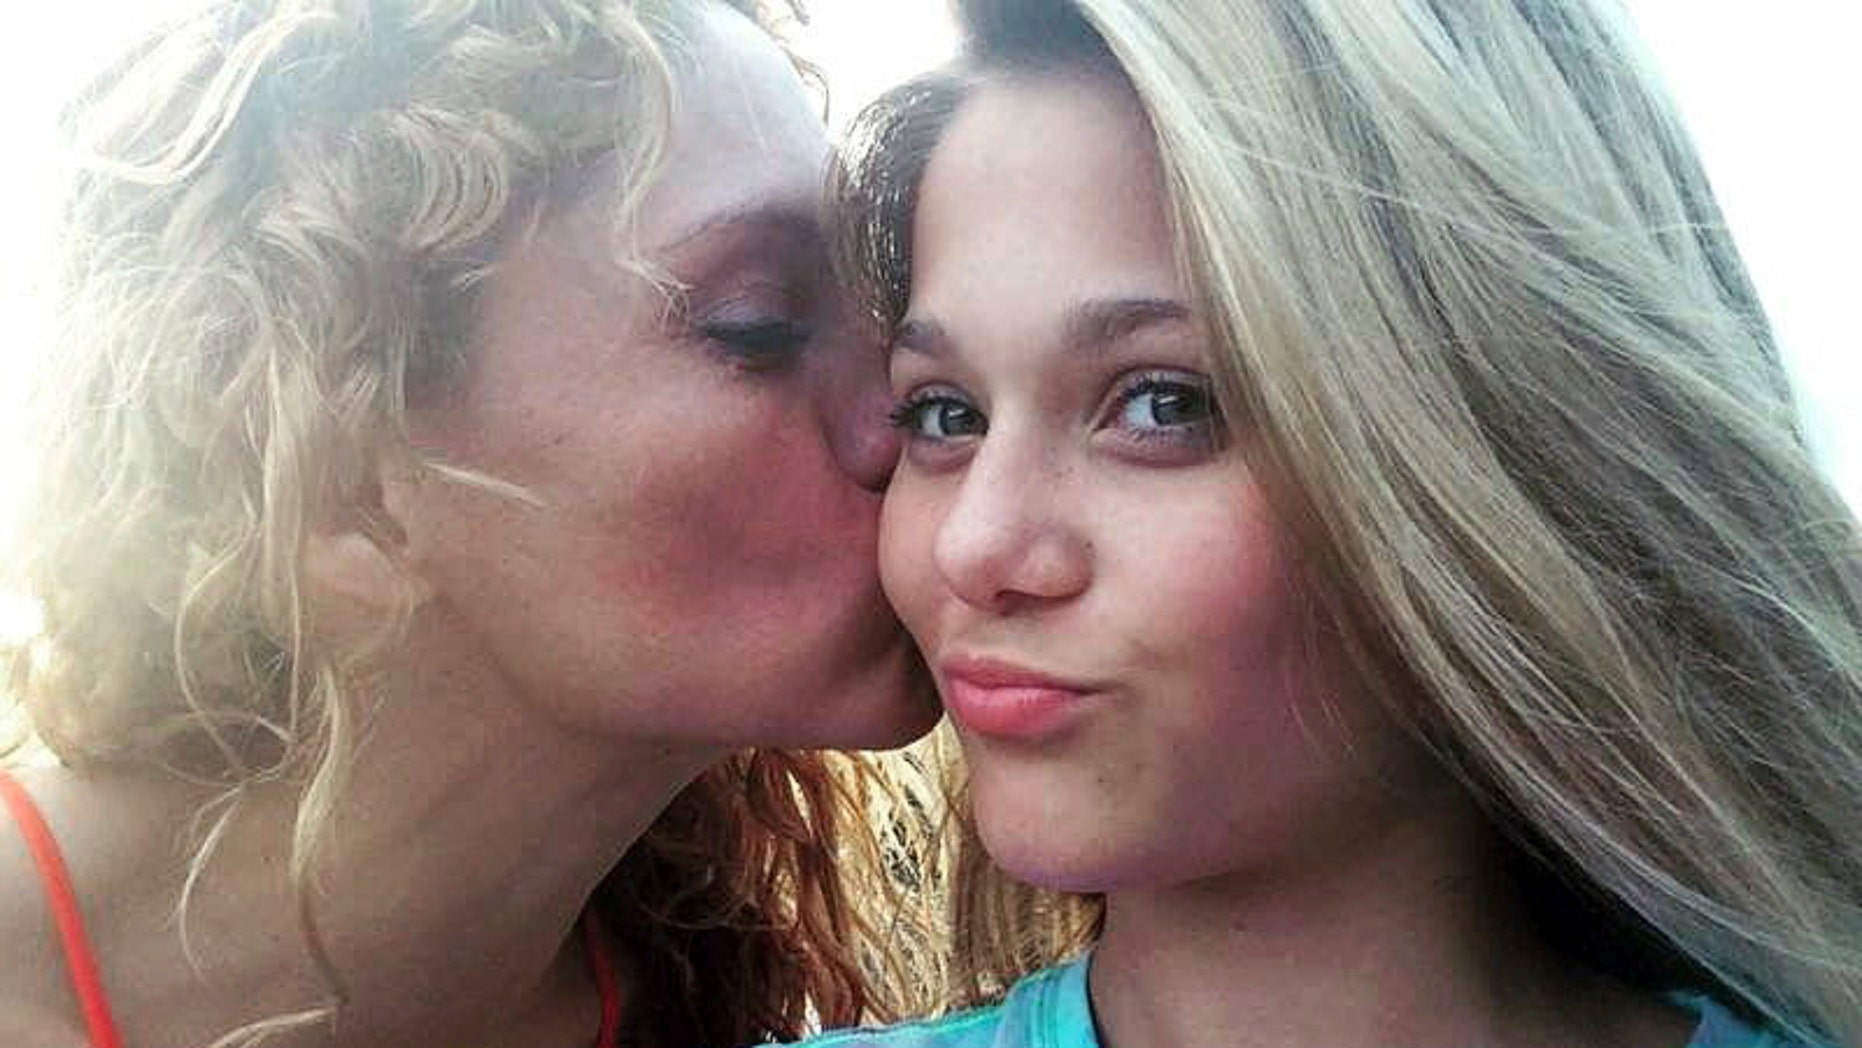 This undated photo shows Gabriella Green, 12, with her mother Tanya. Two 12-year-olds have been charged with cyberstalking in connection with Gabriella's death.